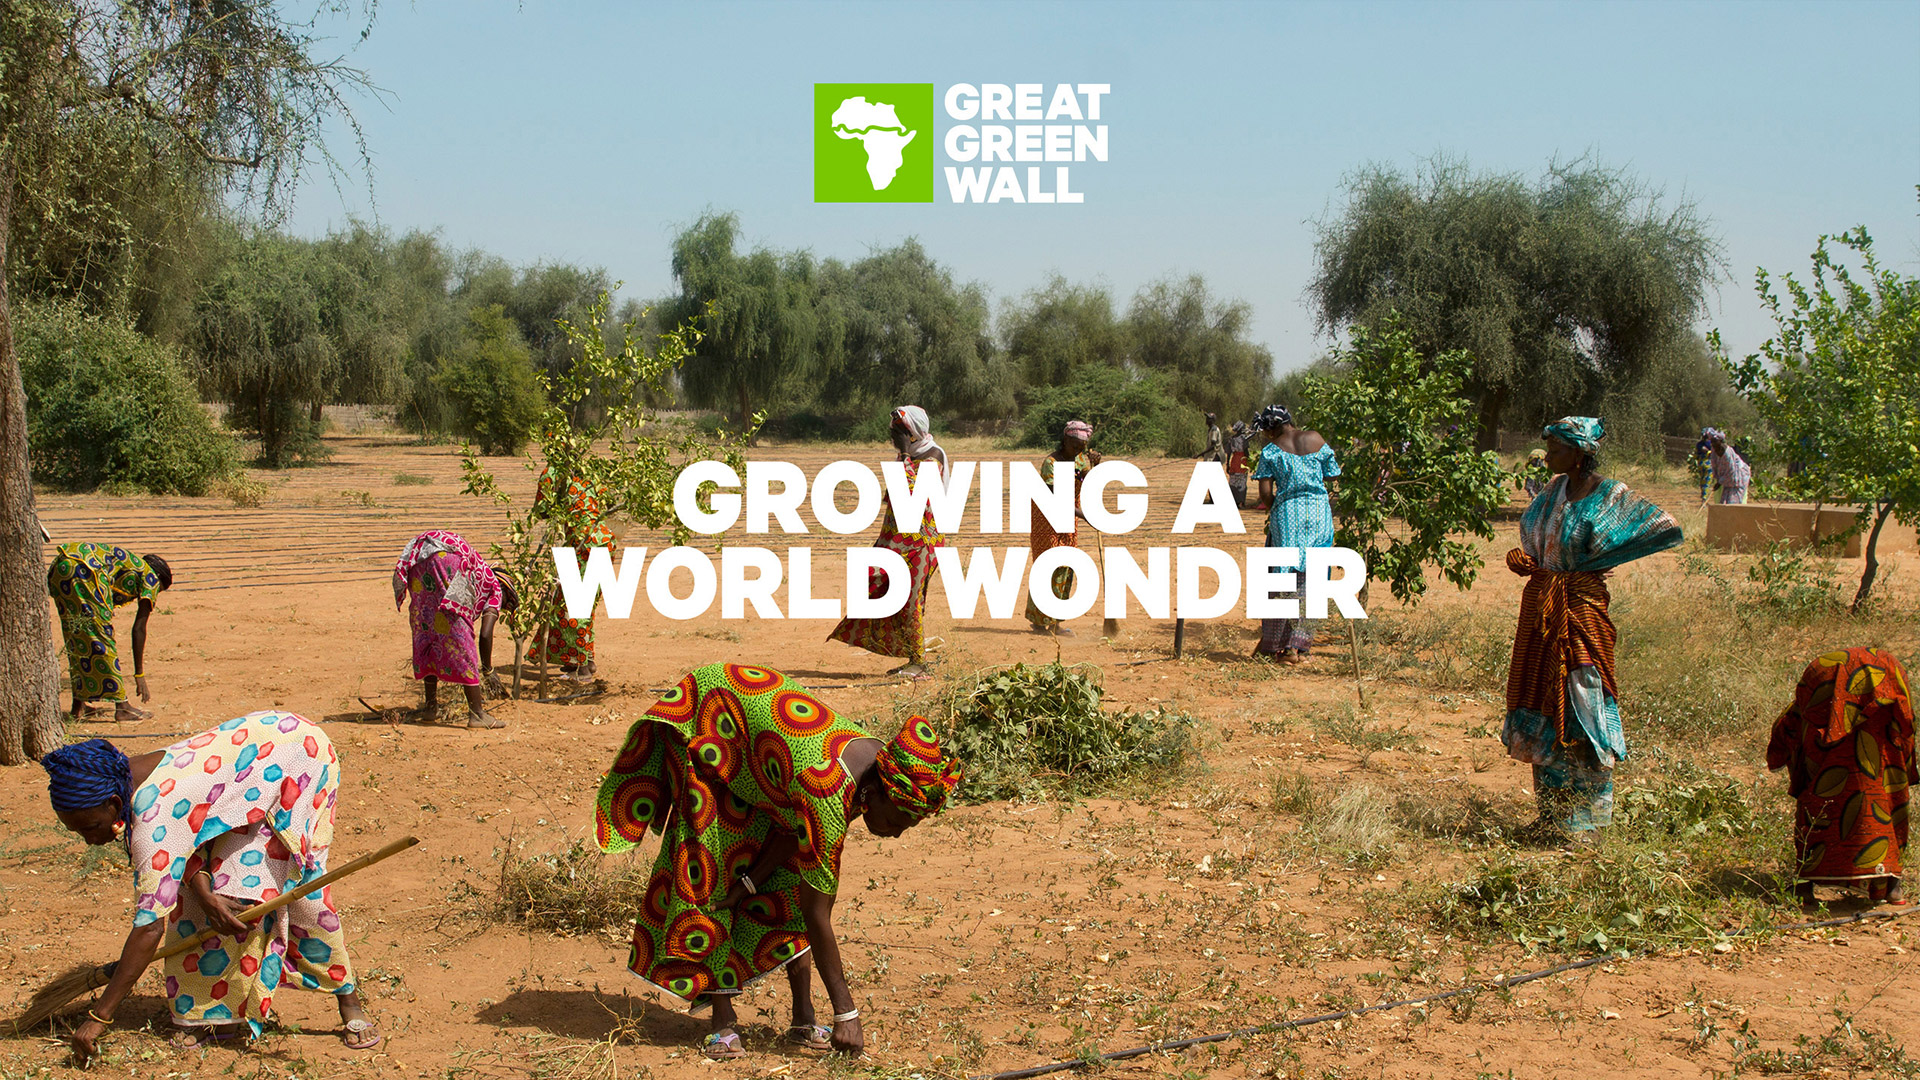 Photo credit: Greatgreenwall.org